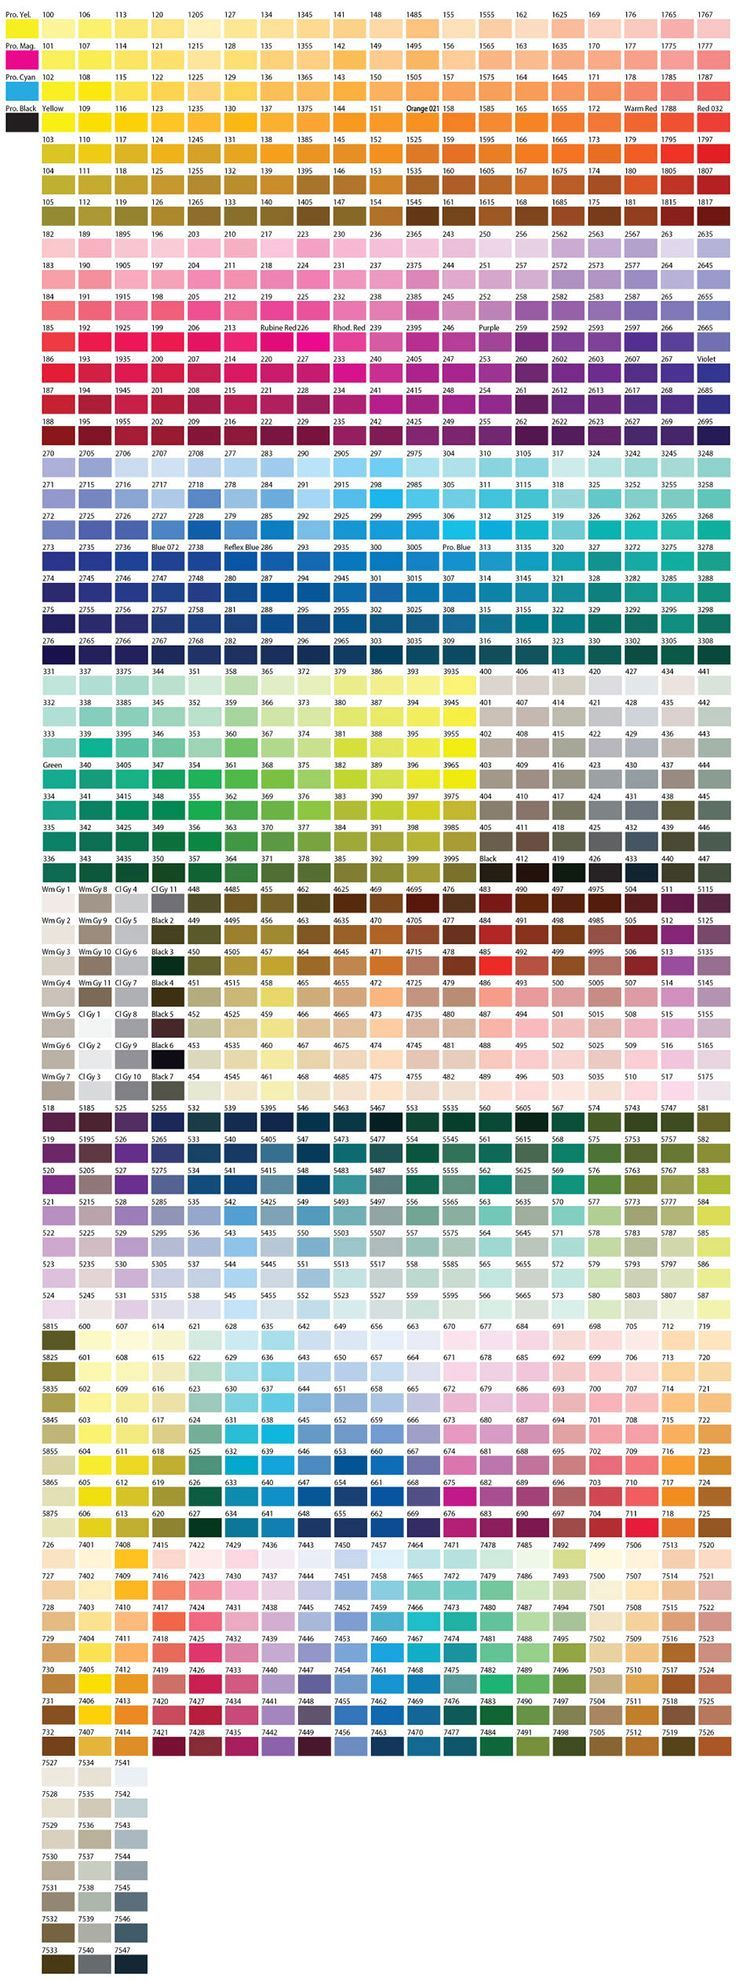 Pantone download cmyk rgb pms fee online pdf free coloring color chart pantone pms not pms i take it this is very color rich extravagant has color 2955 tardis blue nvjuhfo Images